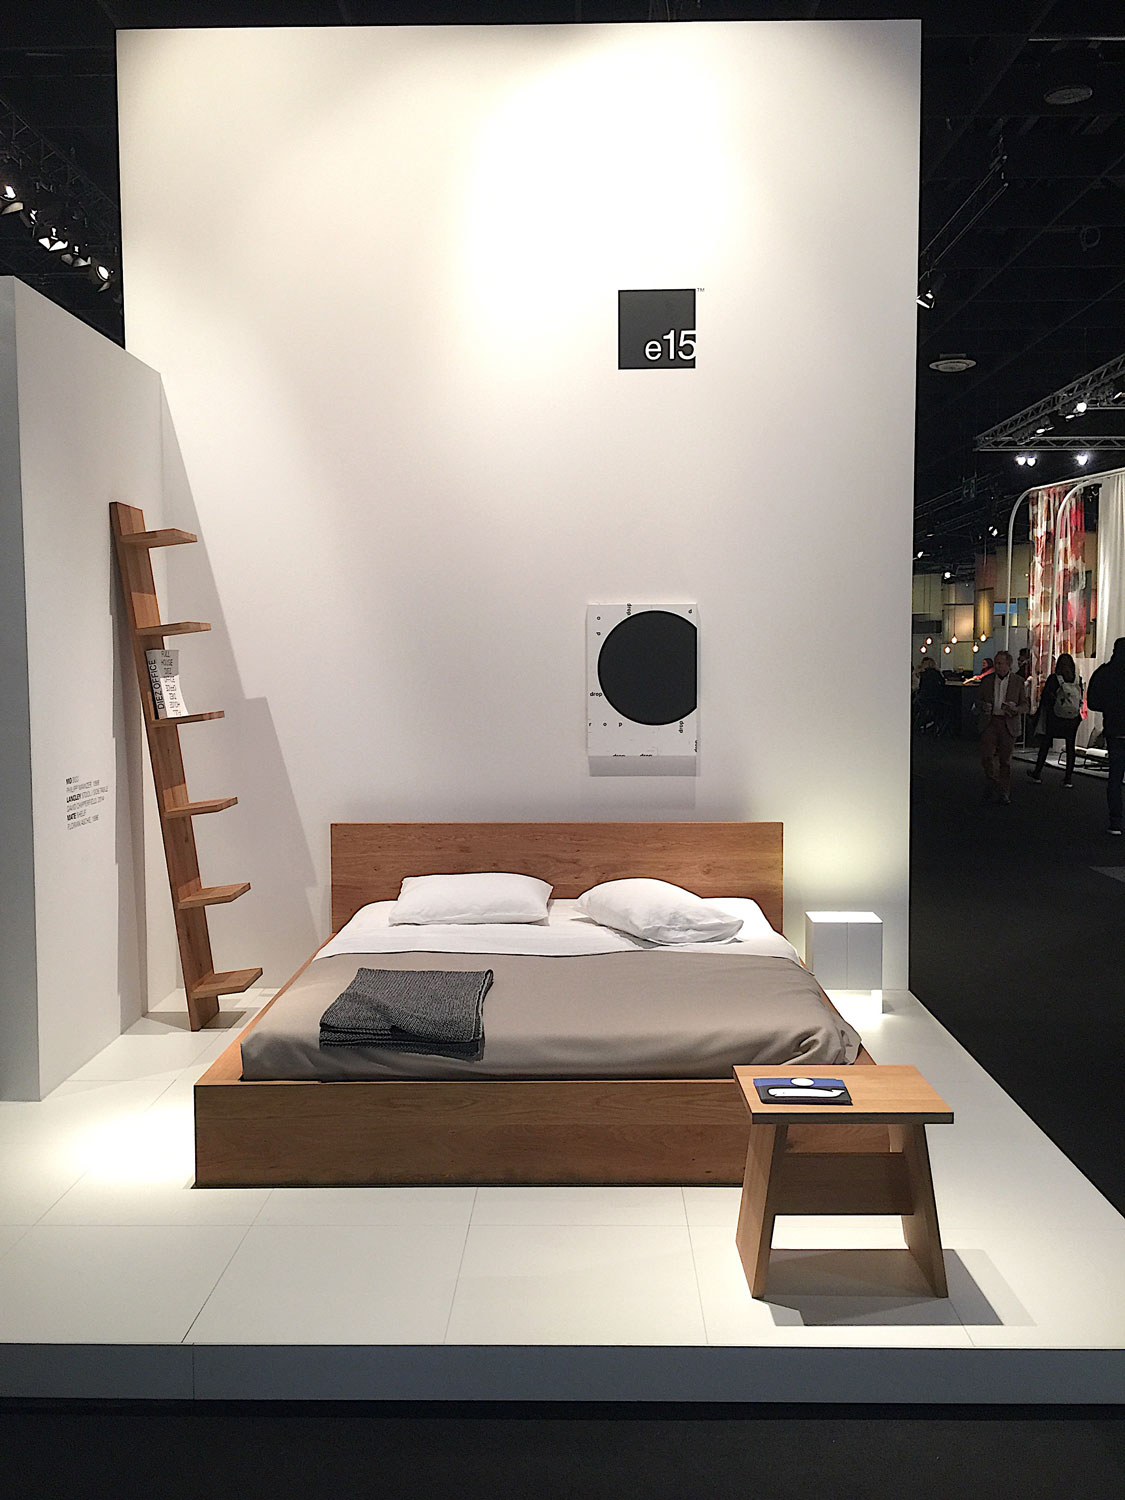 Imm Cologne 2017 trade fair interior trends e15 wood bed